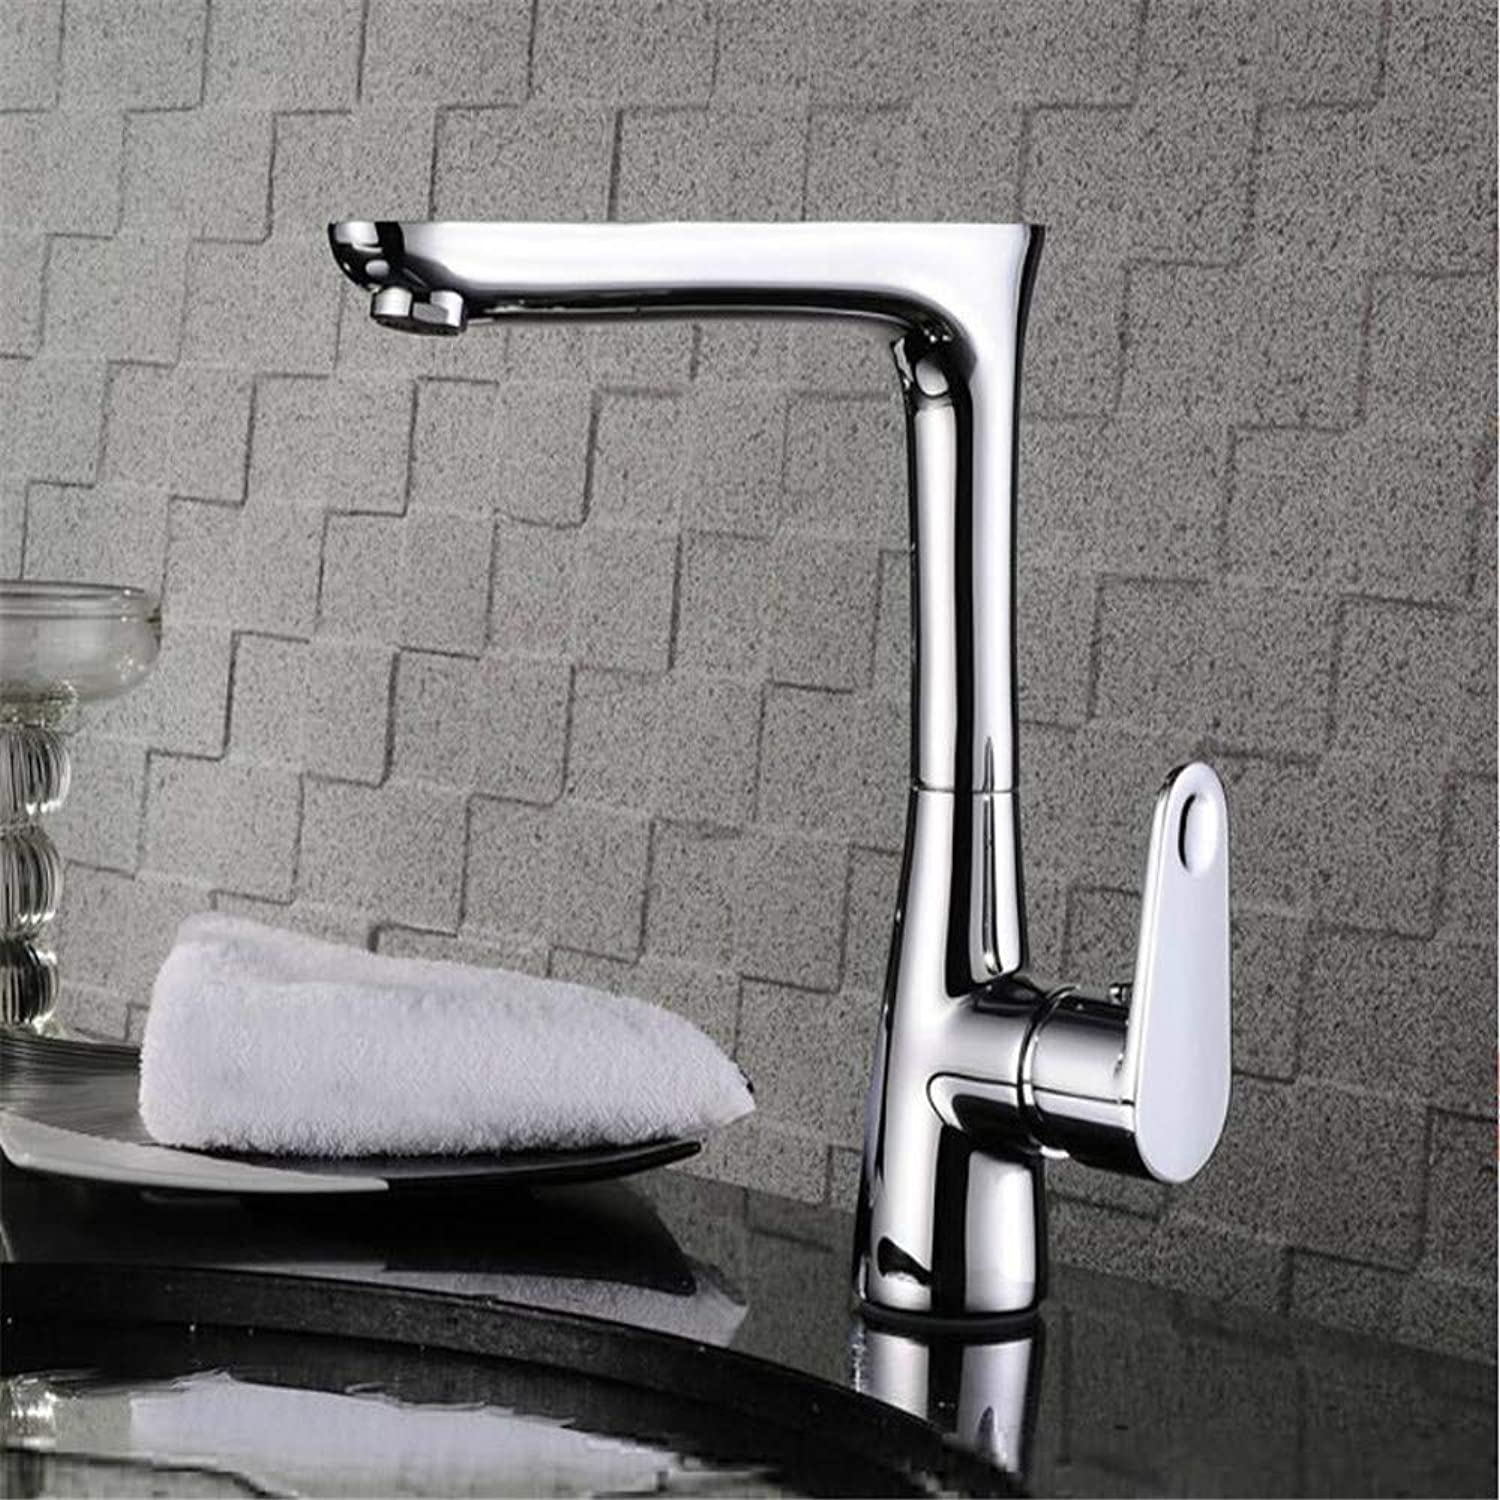 Basin Taps Swivel Spout Faucet Copper Antique Basin Faucet Hot and Cold Water Bath Heightening Single Hole Single Sink Faucet